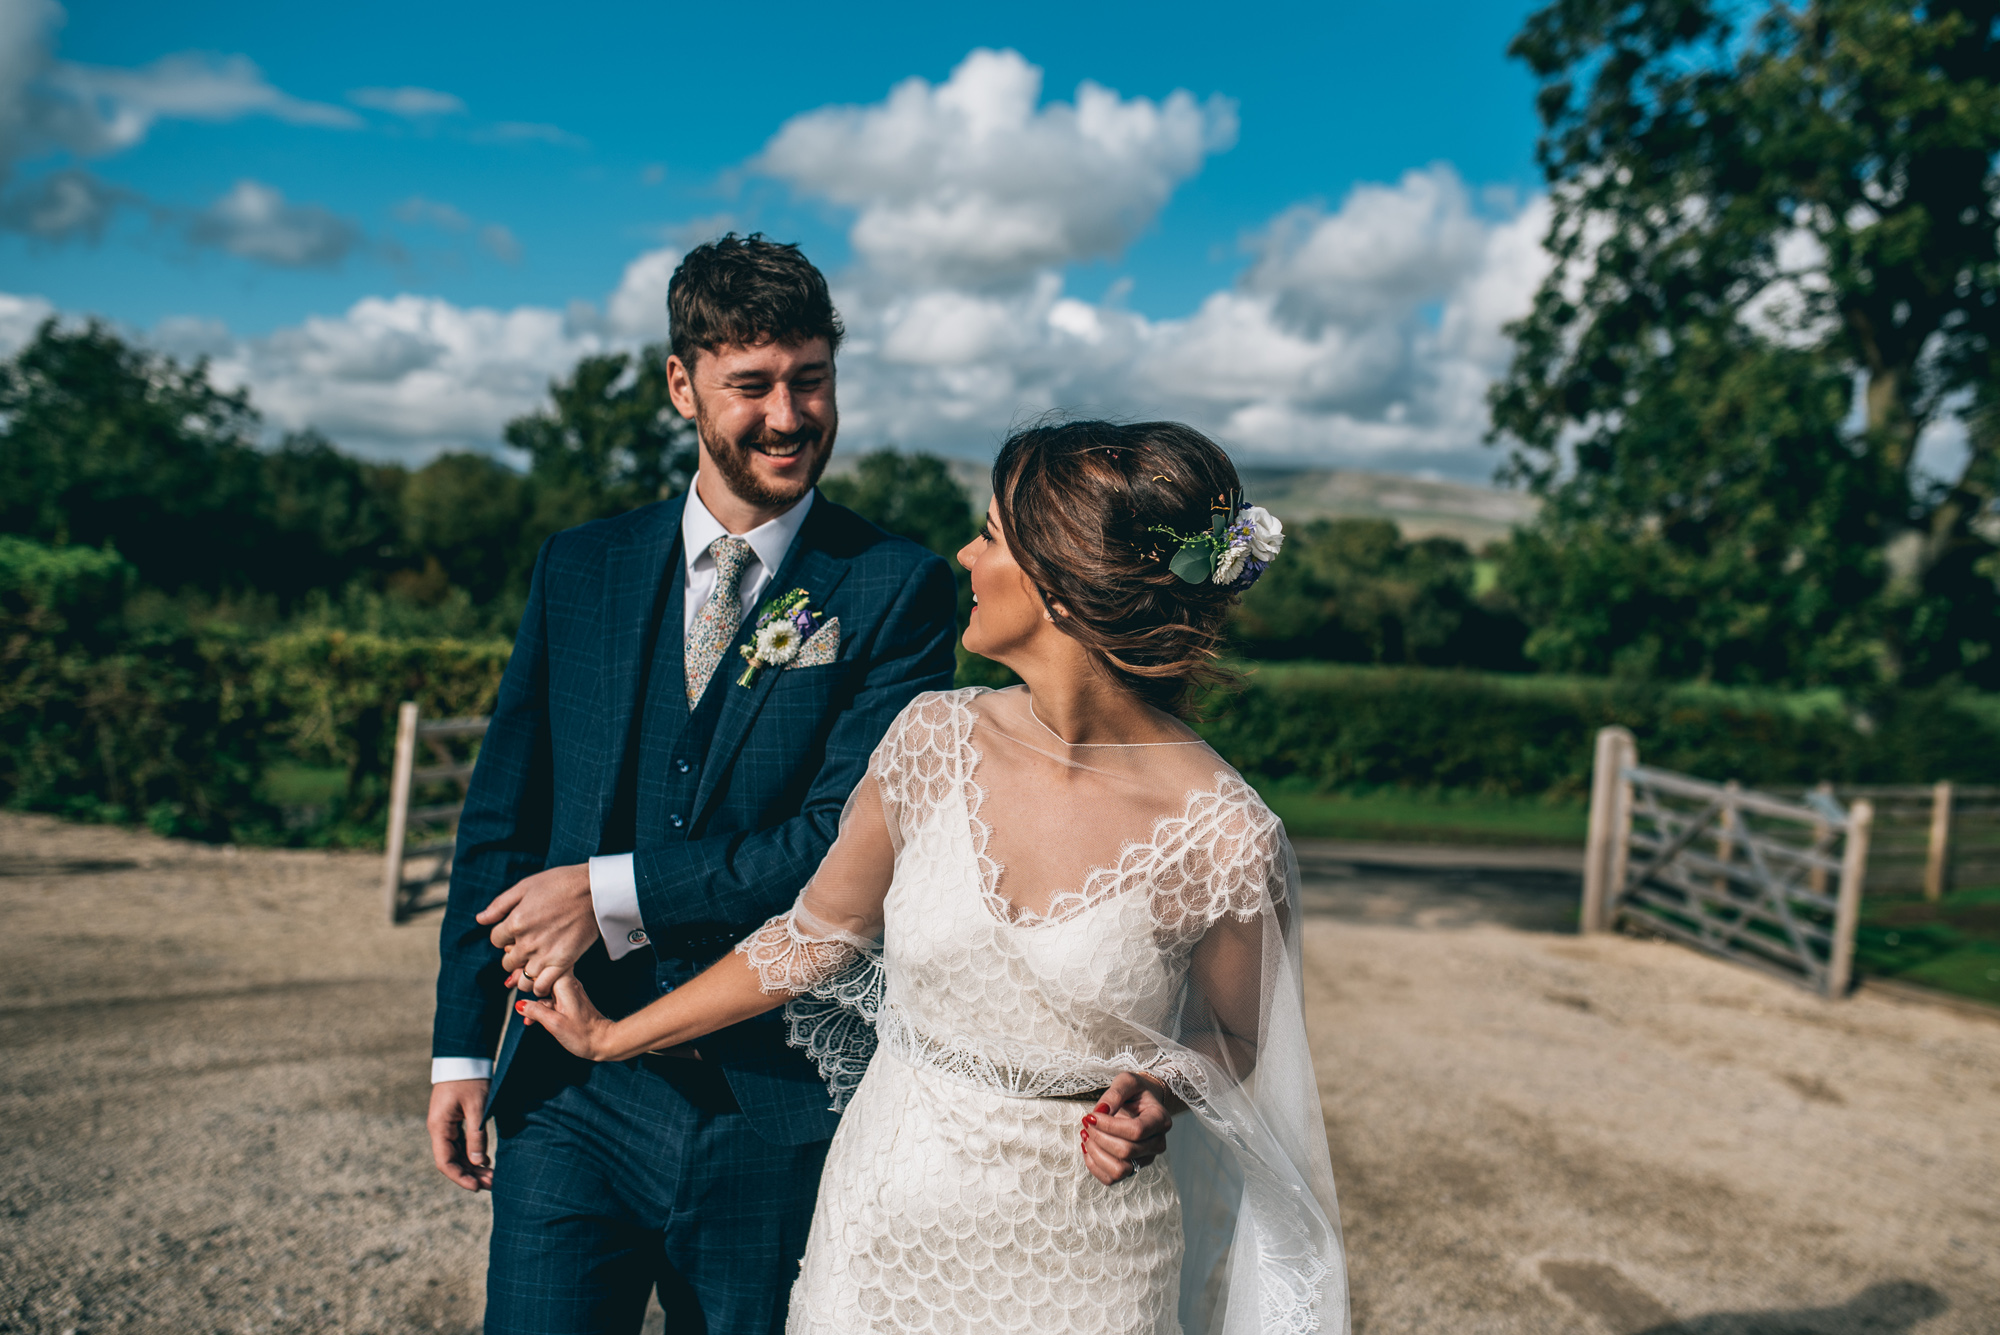 Kate-Beaumont-Sheffield-Lucy-Bohemian-Lace-Dress-Barn-Wedding-Cumbria-37.jpg